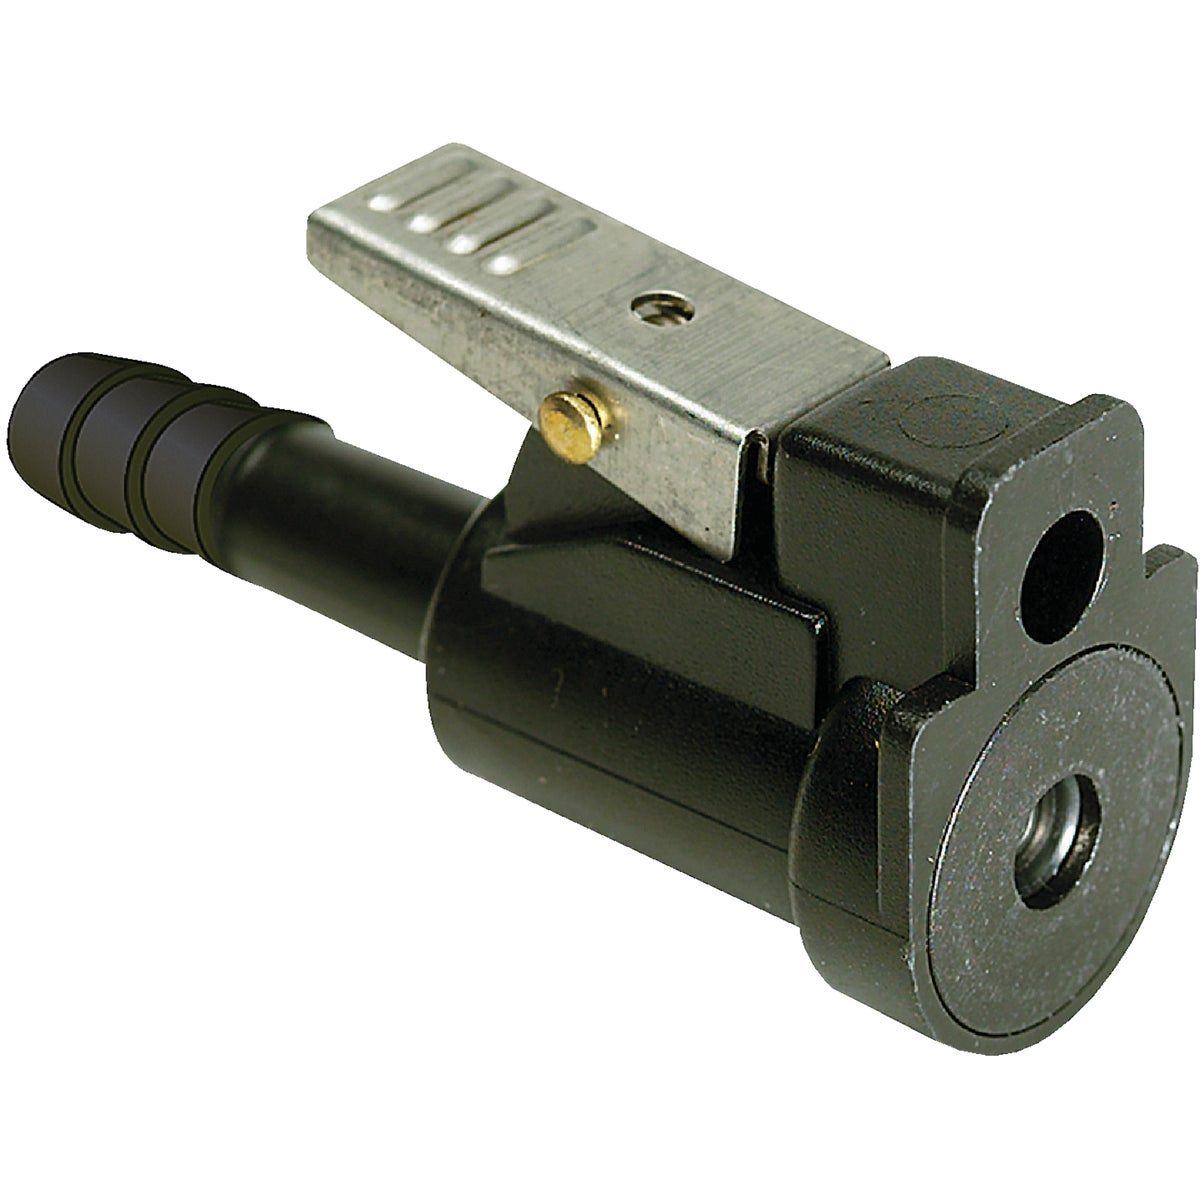 "5/16"" OMC FUEL CONNECTOR - 20521 by Seachoice Prod"